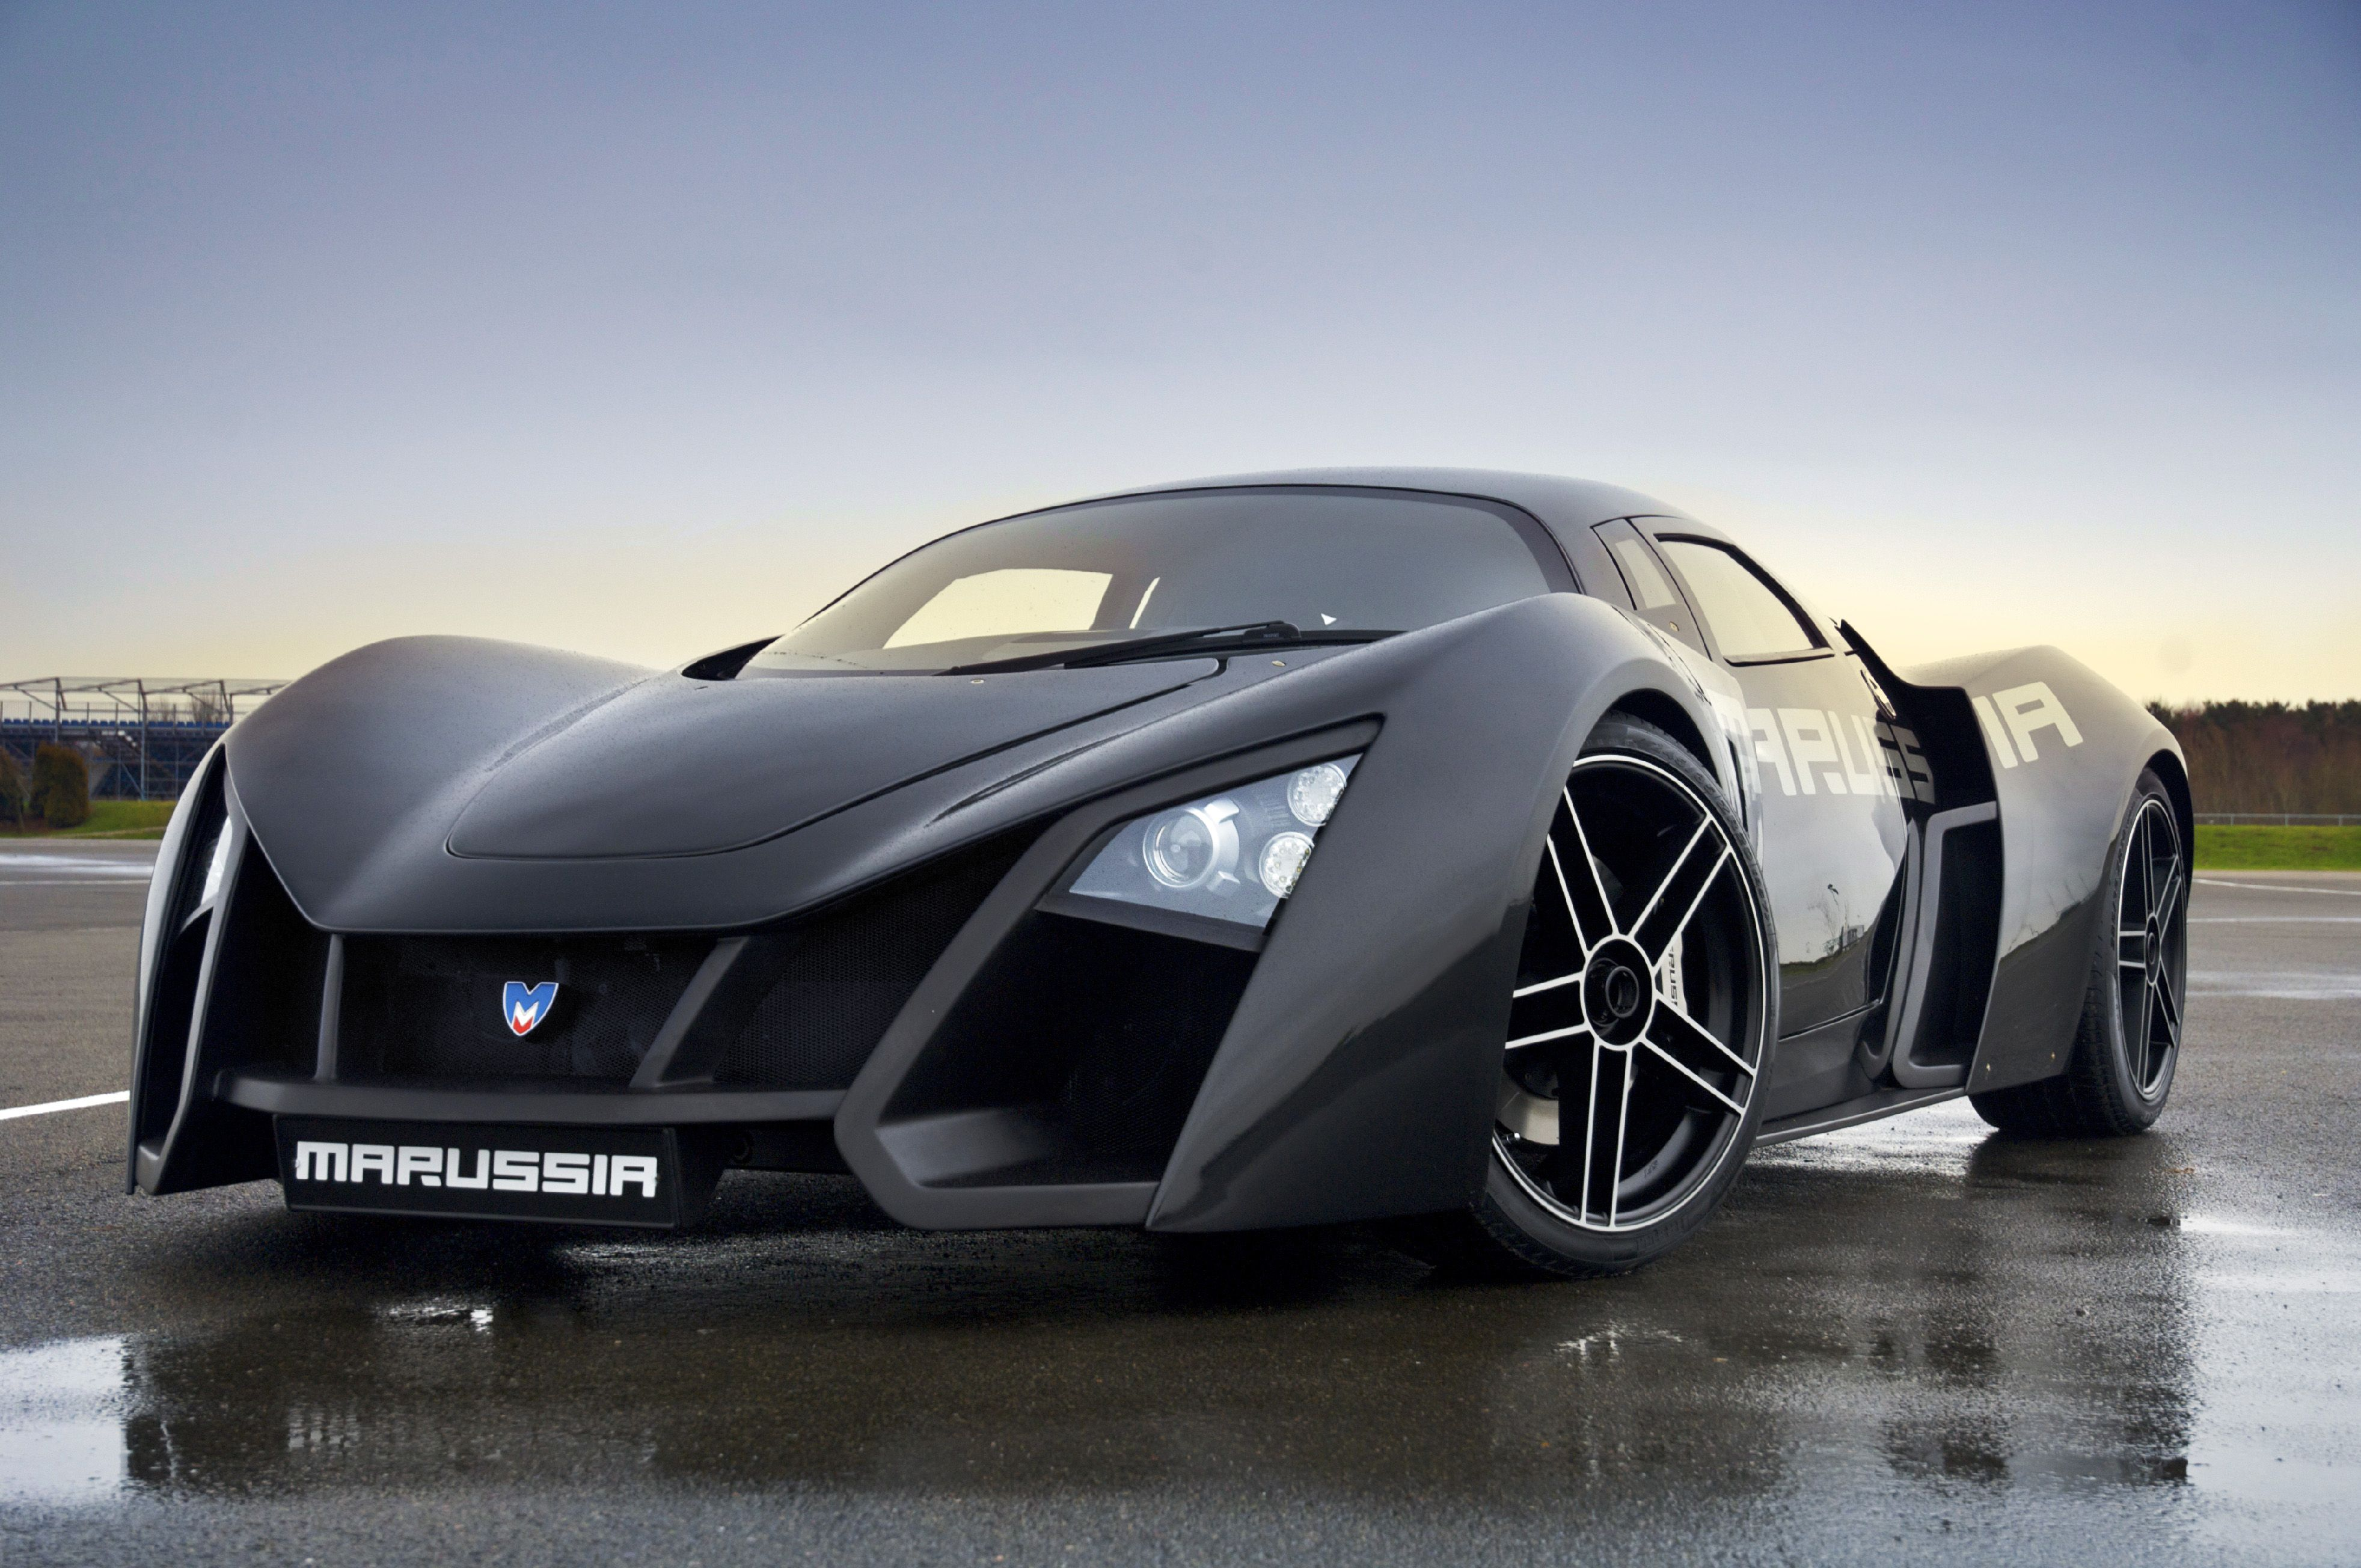 European Sports Car Bit Longer To See Just How Interesting Russia S first